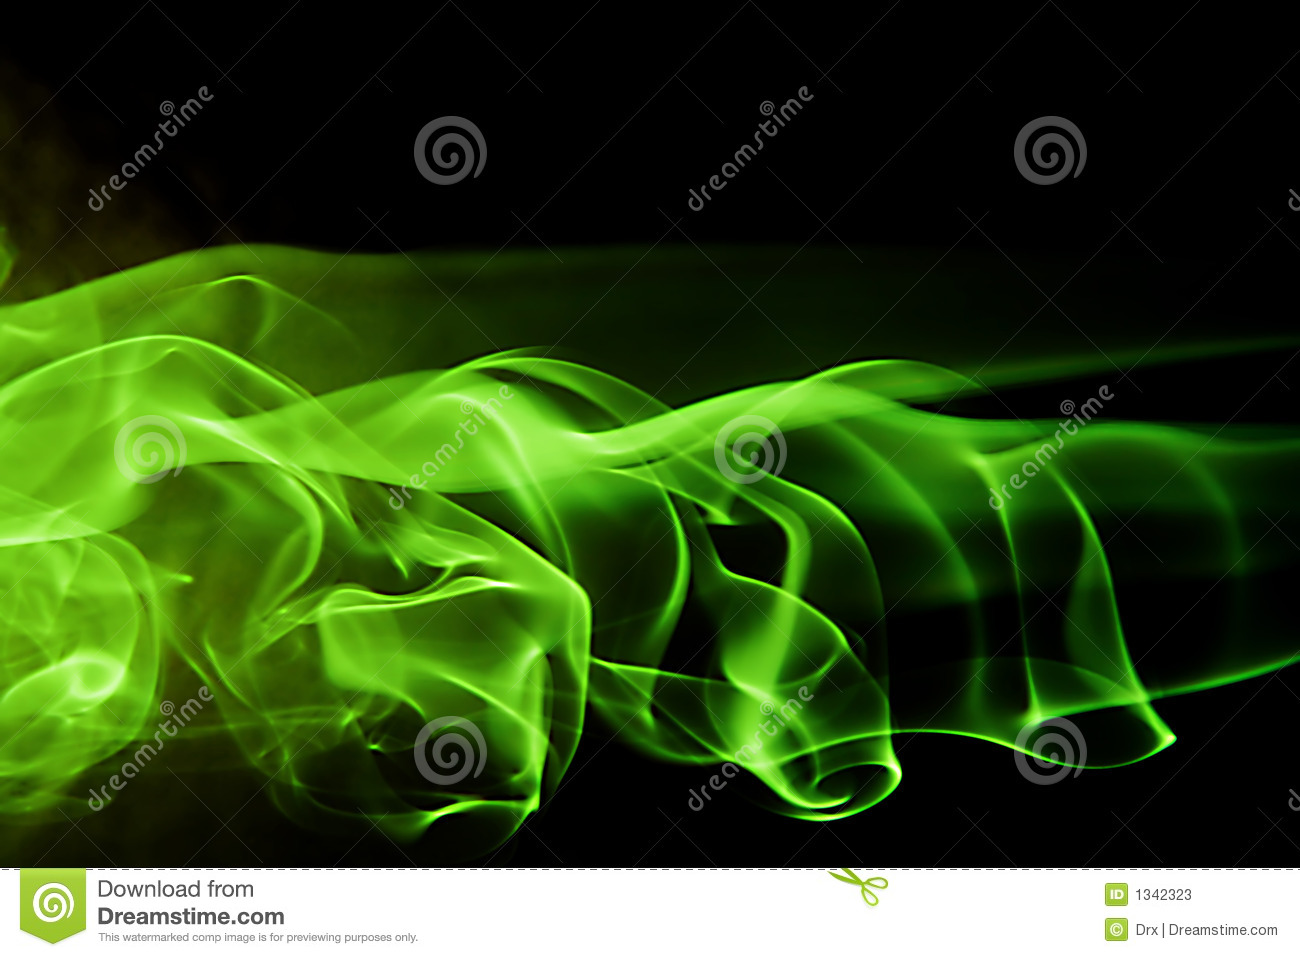 3d Smoke Wallpaper Abstract Background Shape Green Smoke Stock Photos